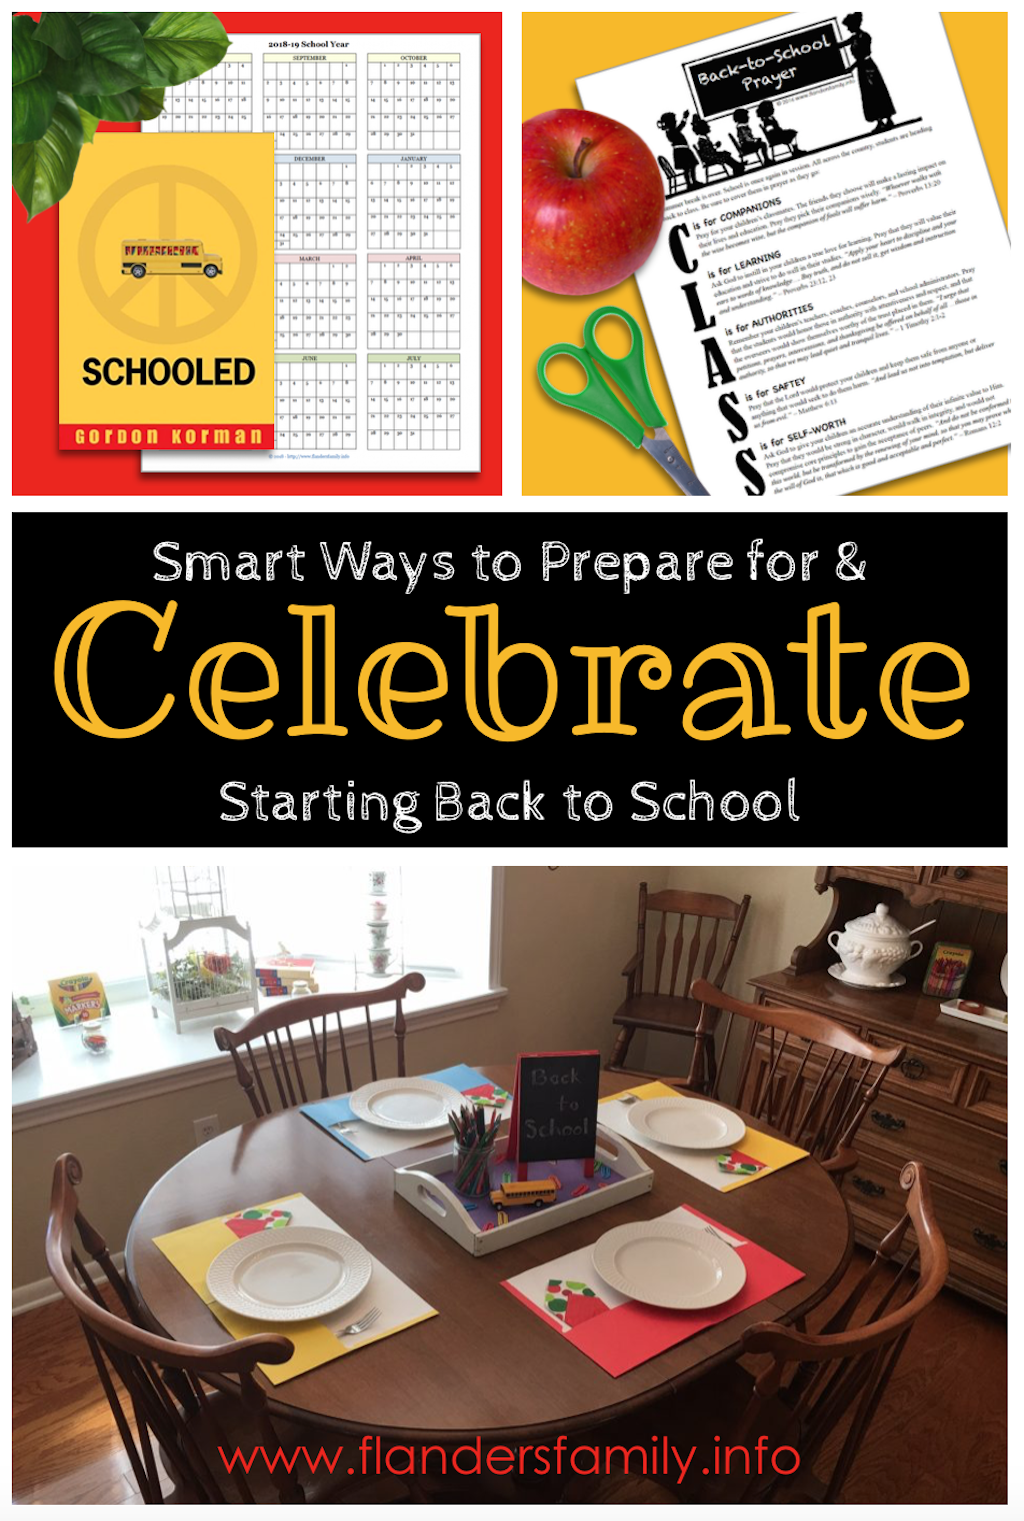 Smart Ways to Celebrate Starting Back to School